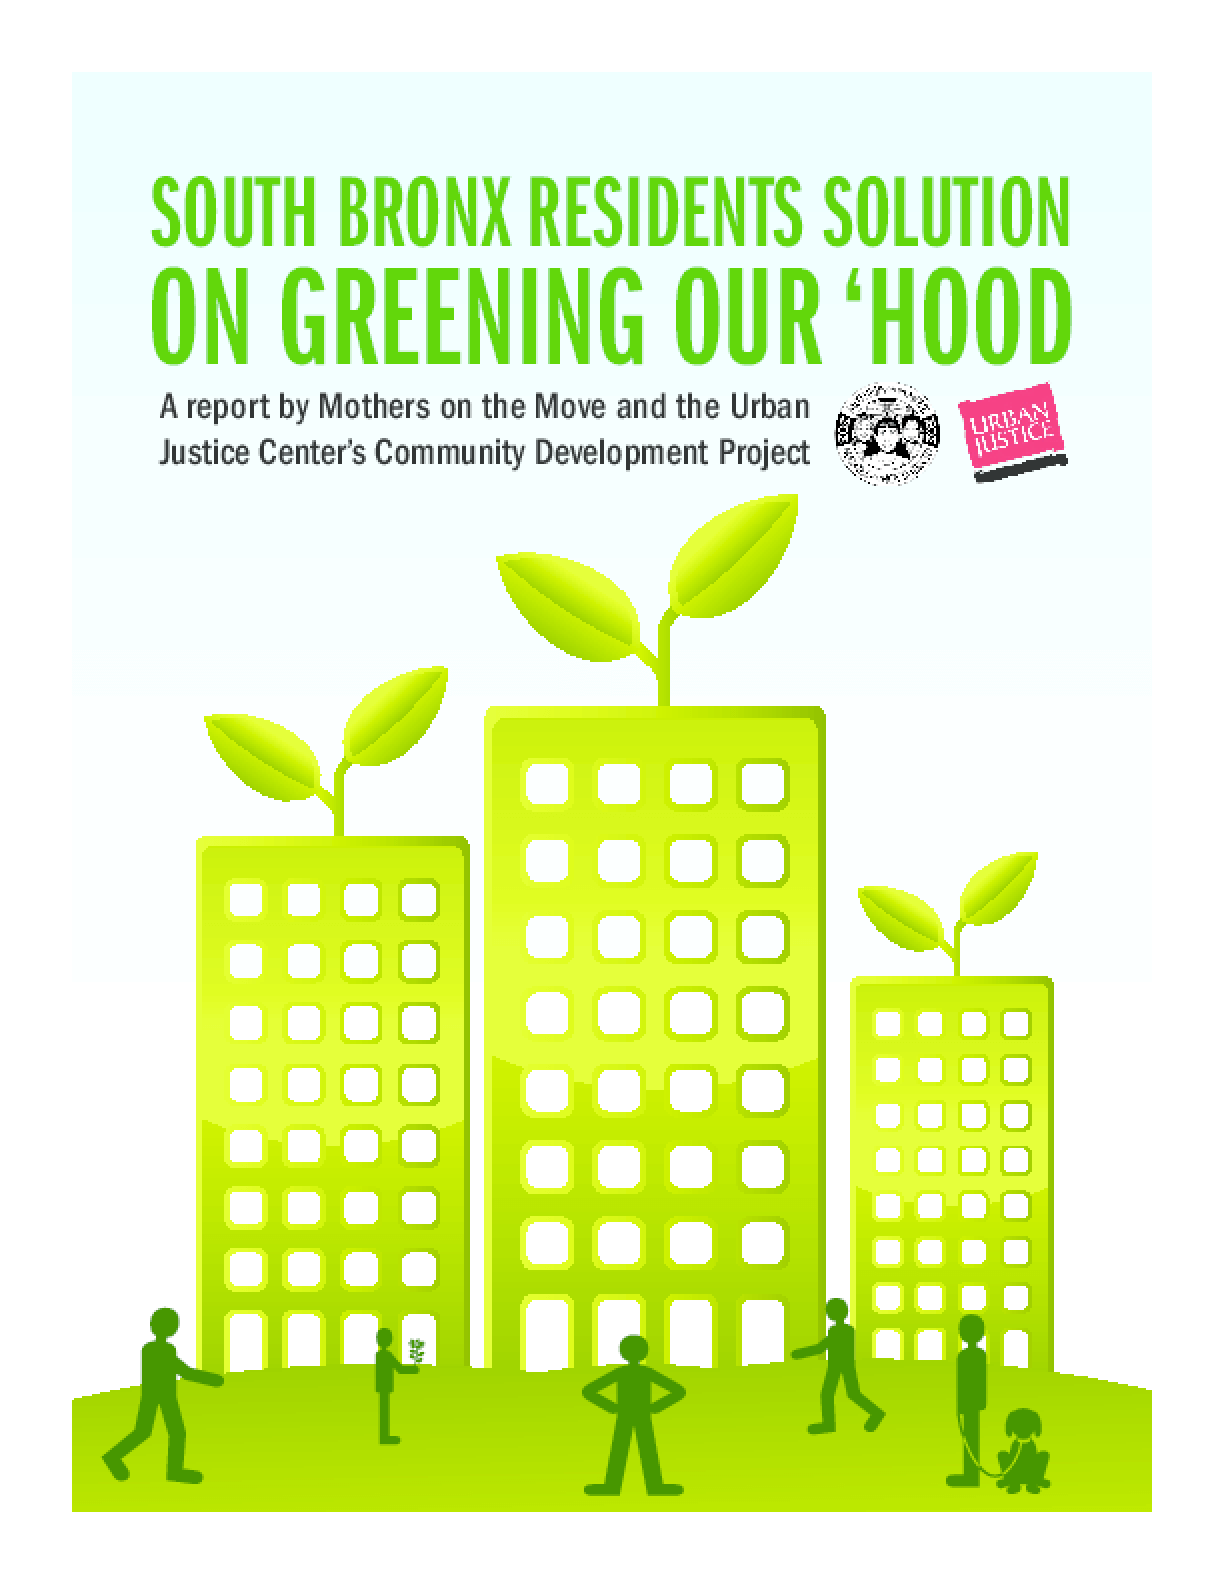 South Bronx ResidentS Solution on Greening Our 'Hood: A report by Mothers on the Move and the Urban Justice Center's Community Development Project